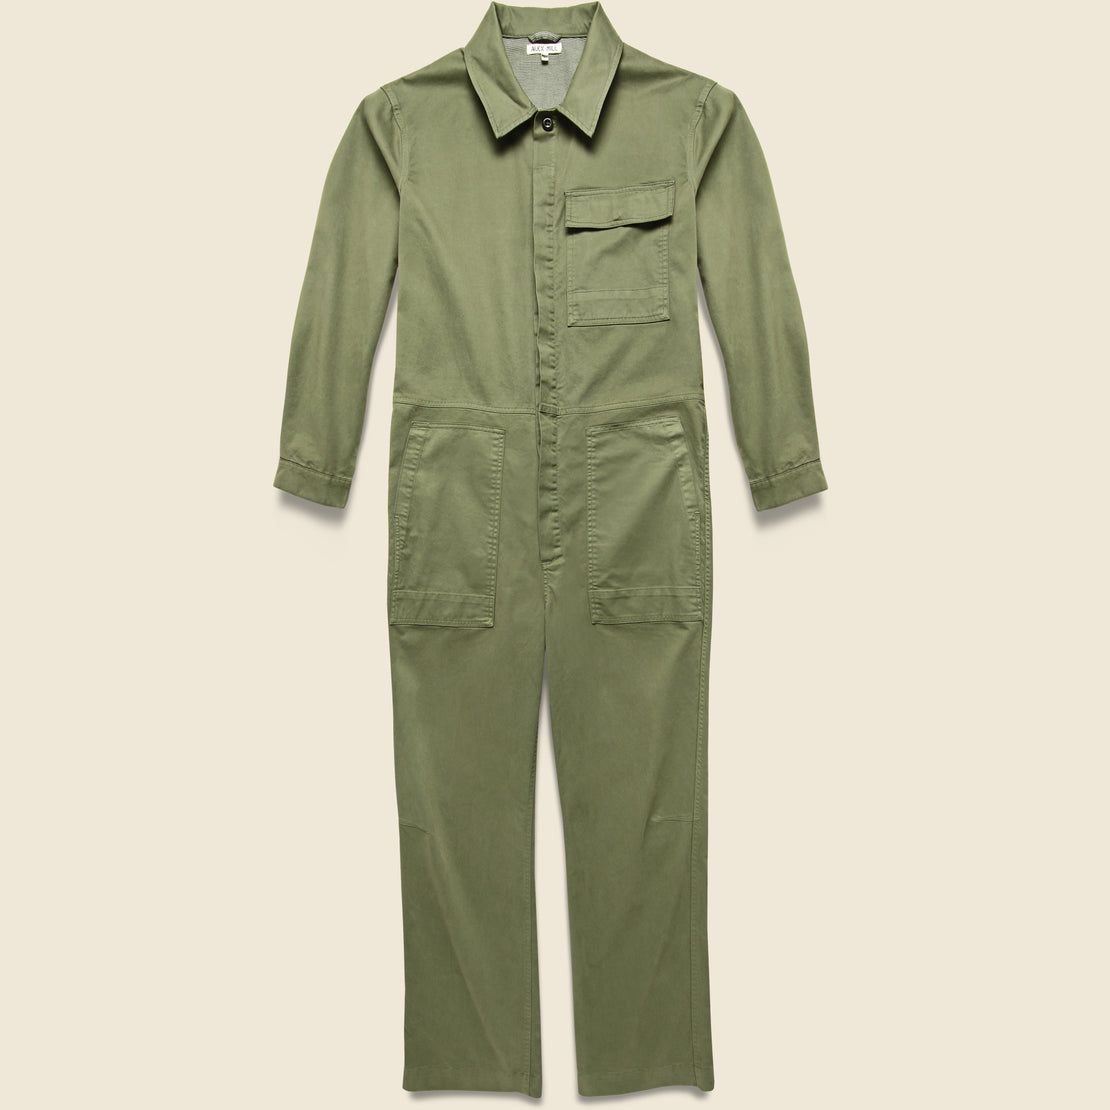 Alex Mill Unisex Chino Jumpsuit - Military Green